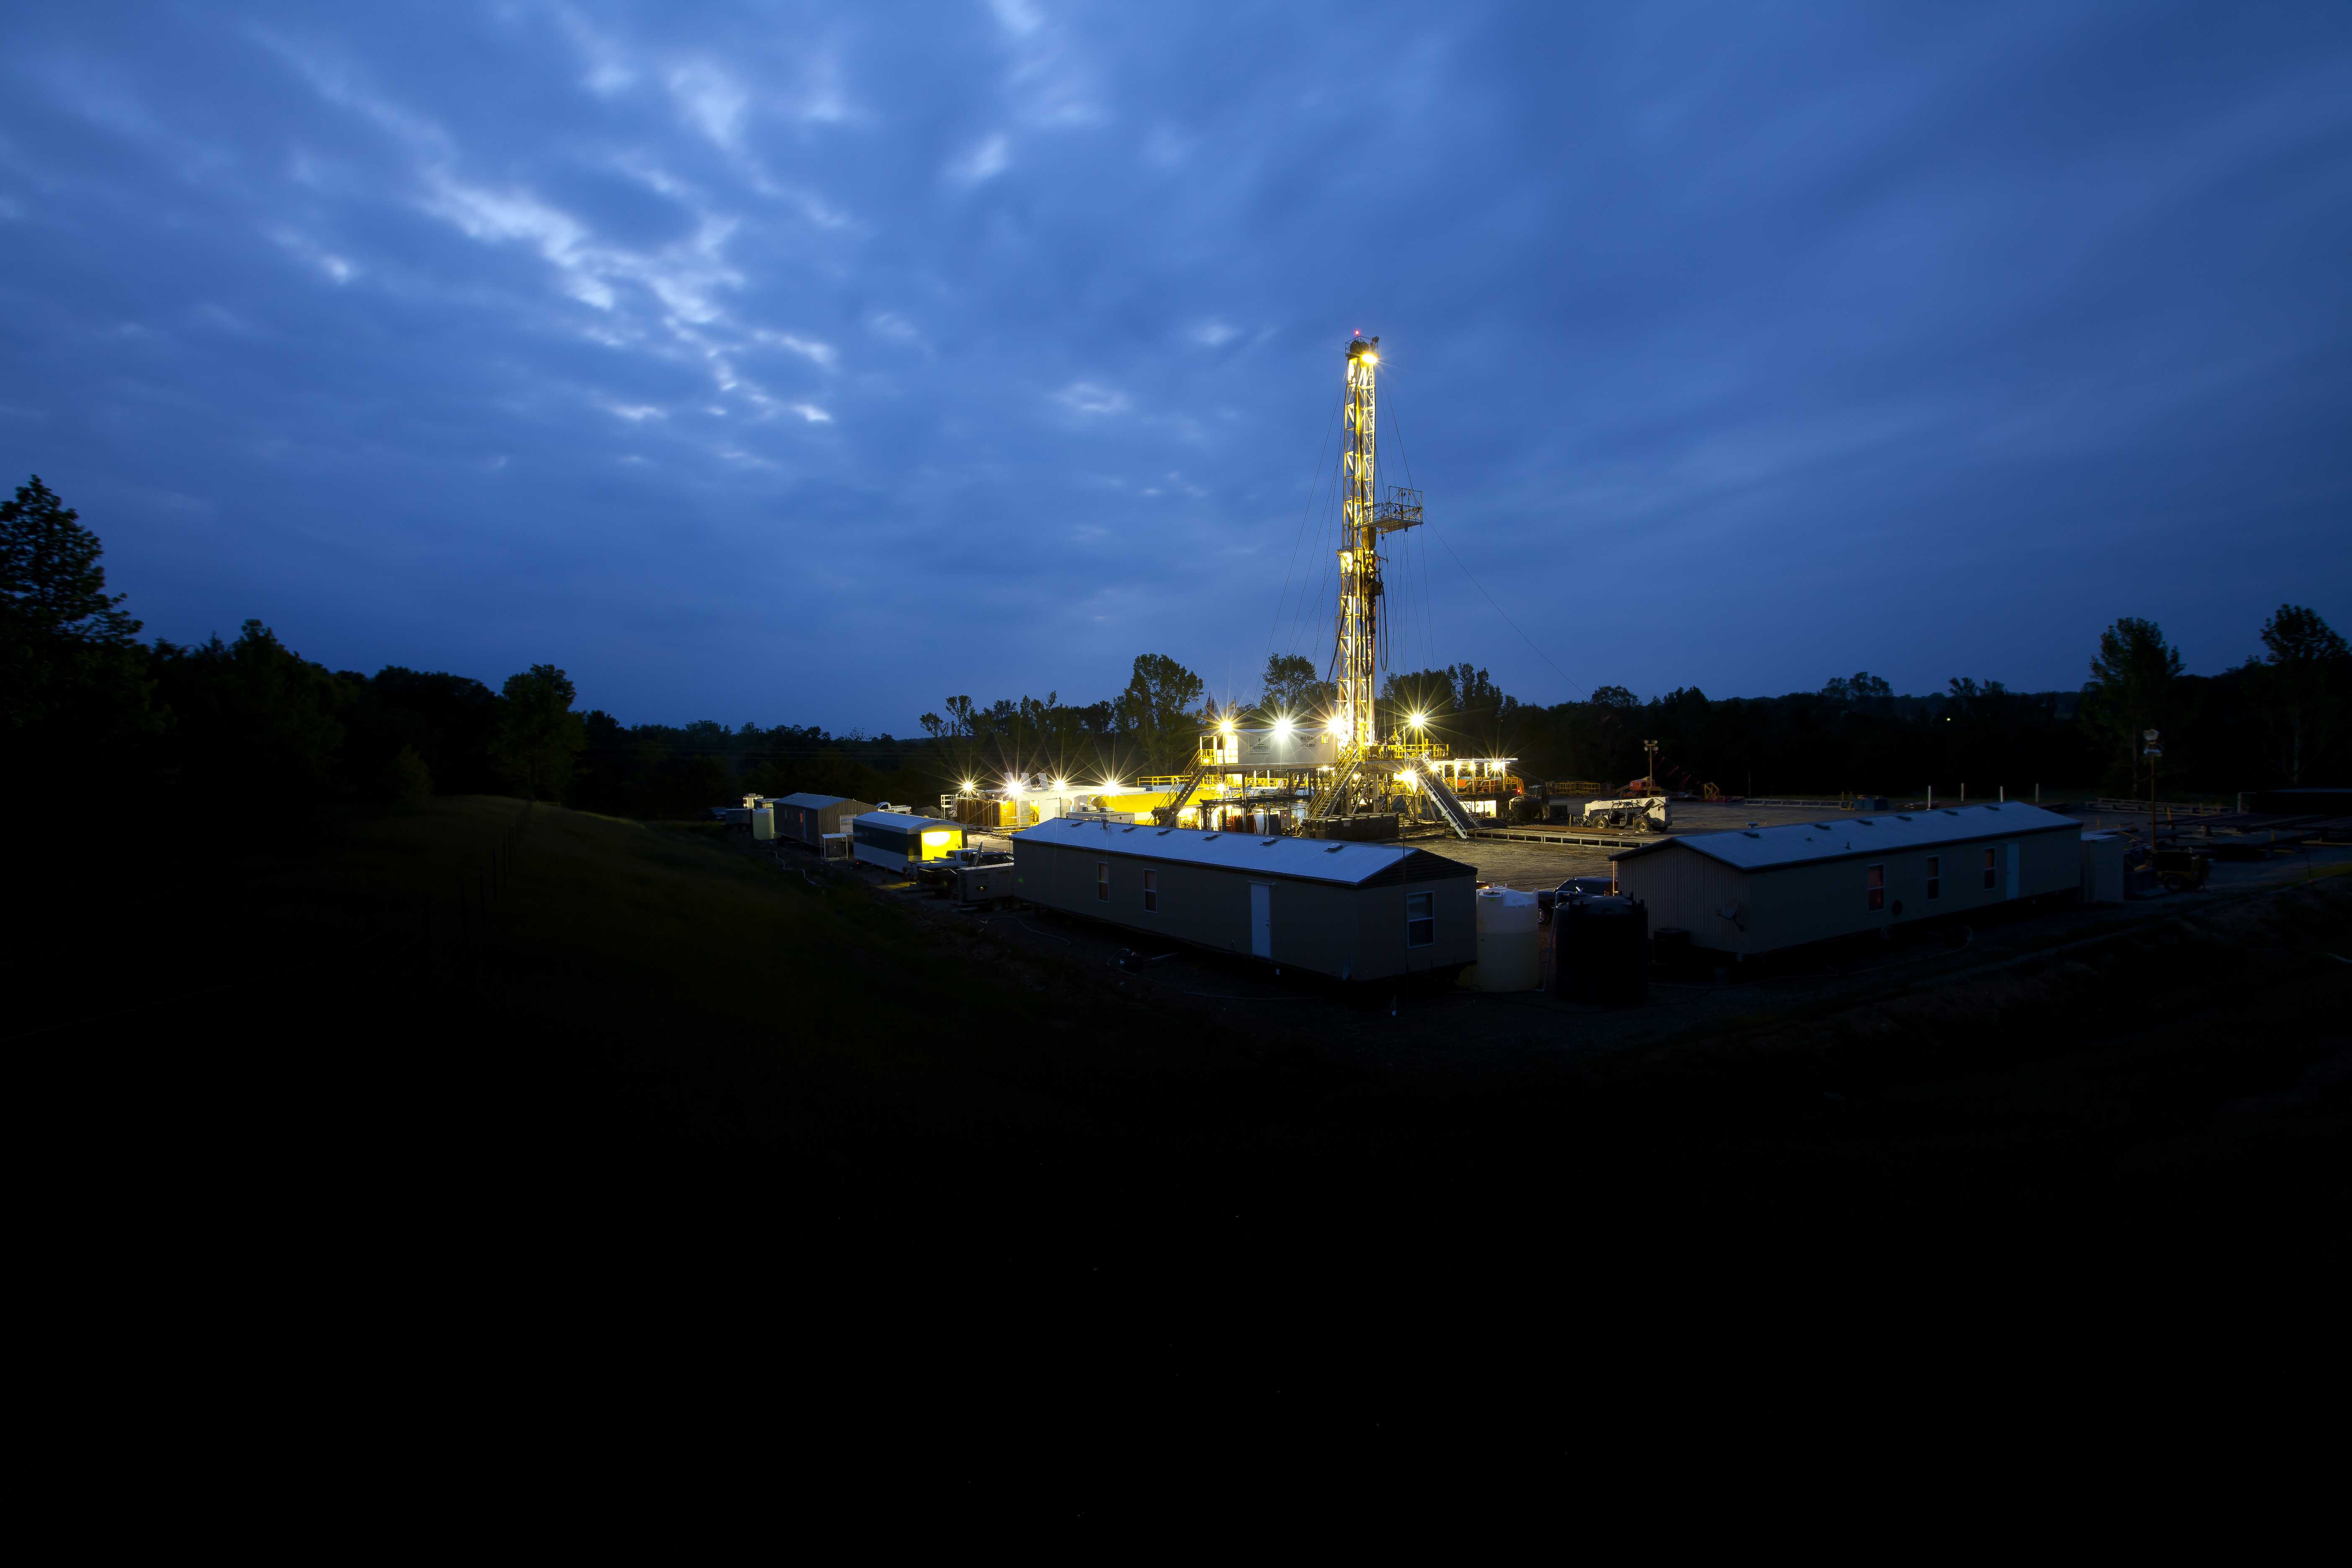 BHP is scaling back drilling at marginal operations and looking to sell some acreage, such as this site in Fayetteville.